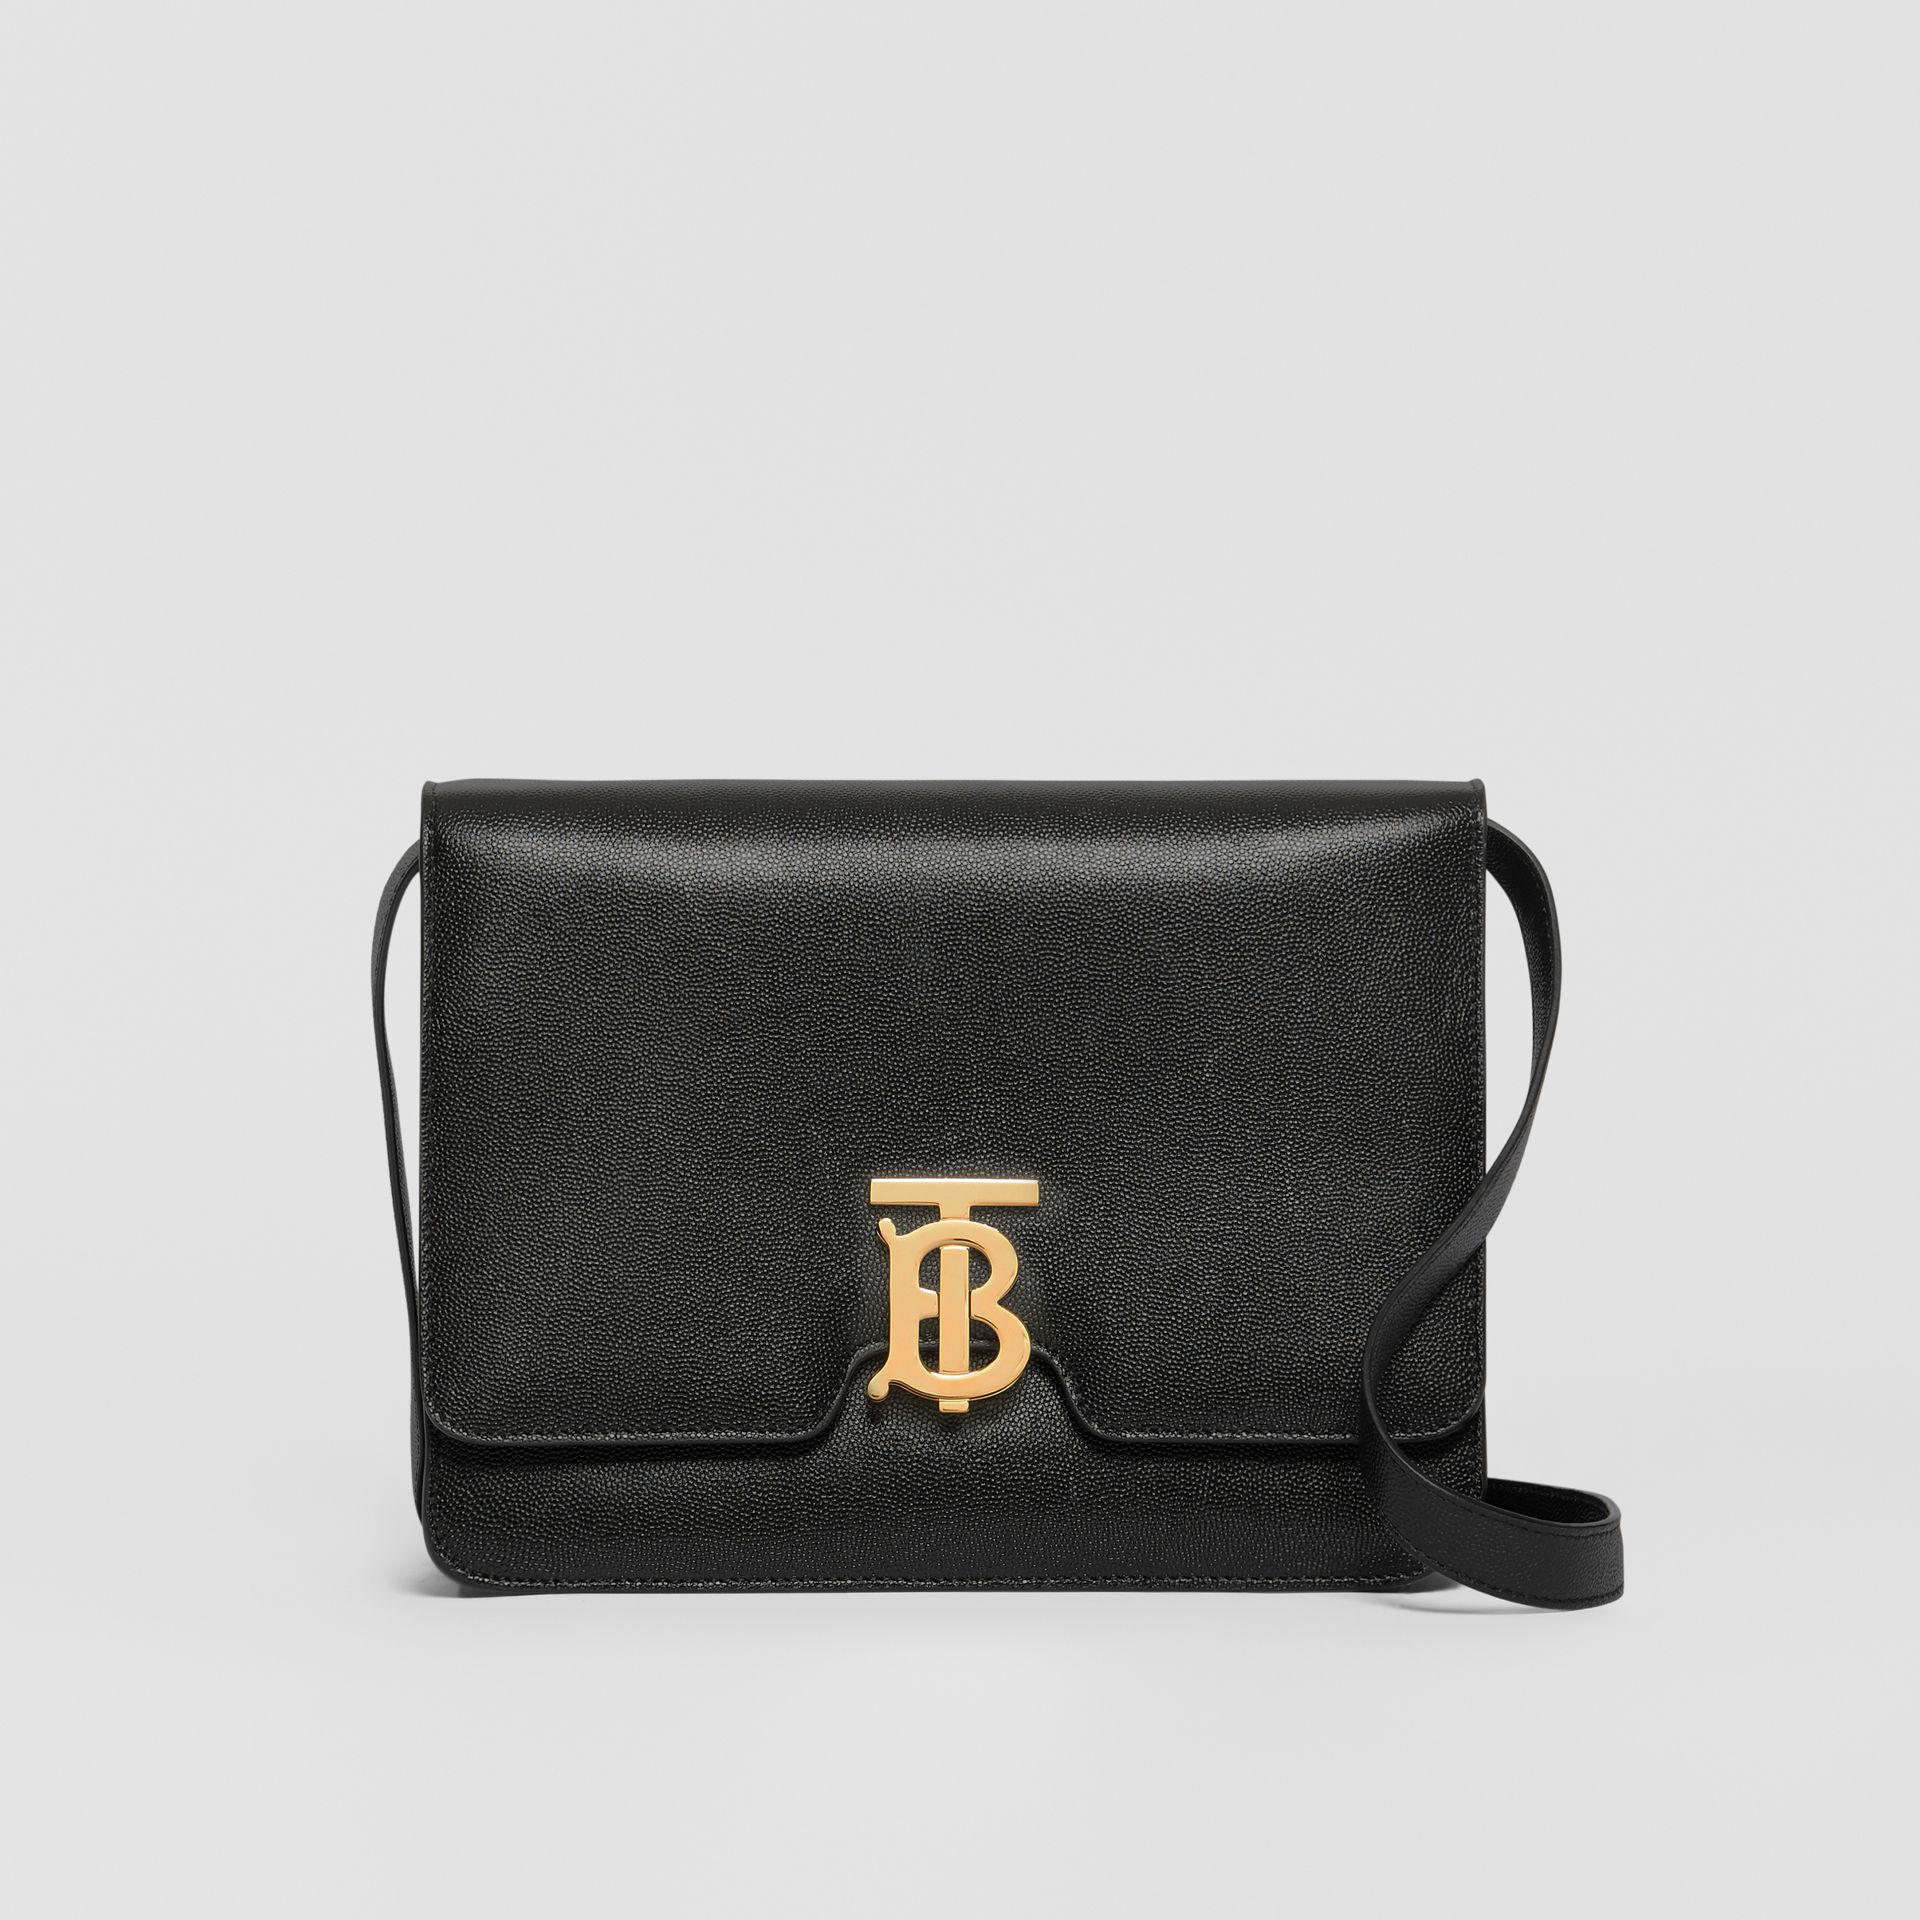 Medium Grainy Leather TB Bag in Black - Women | Burberry Australia - gallery image 0